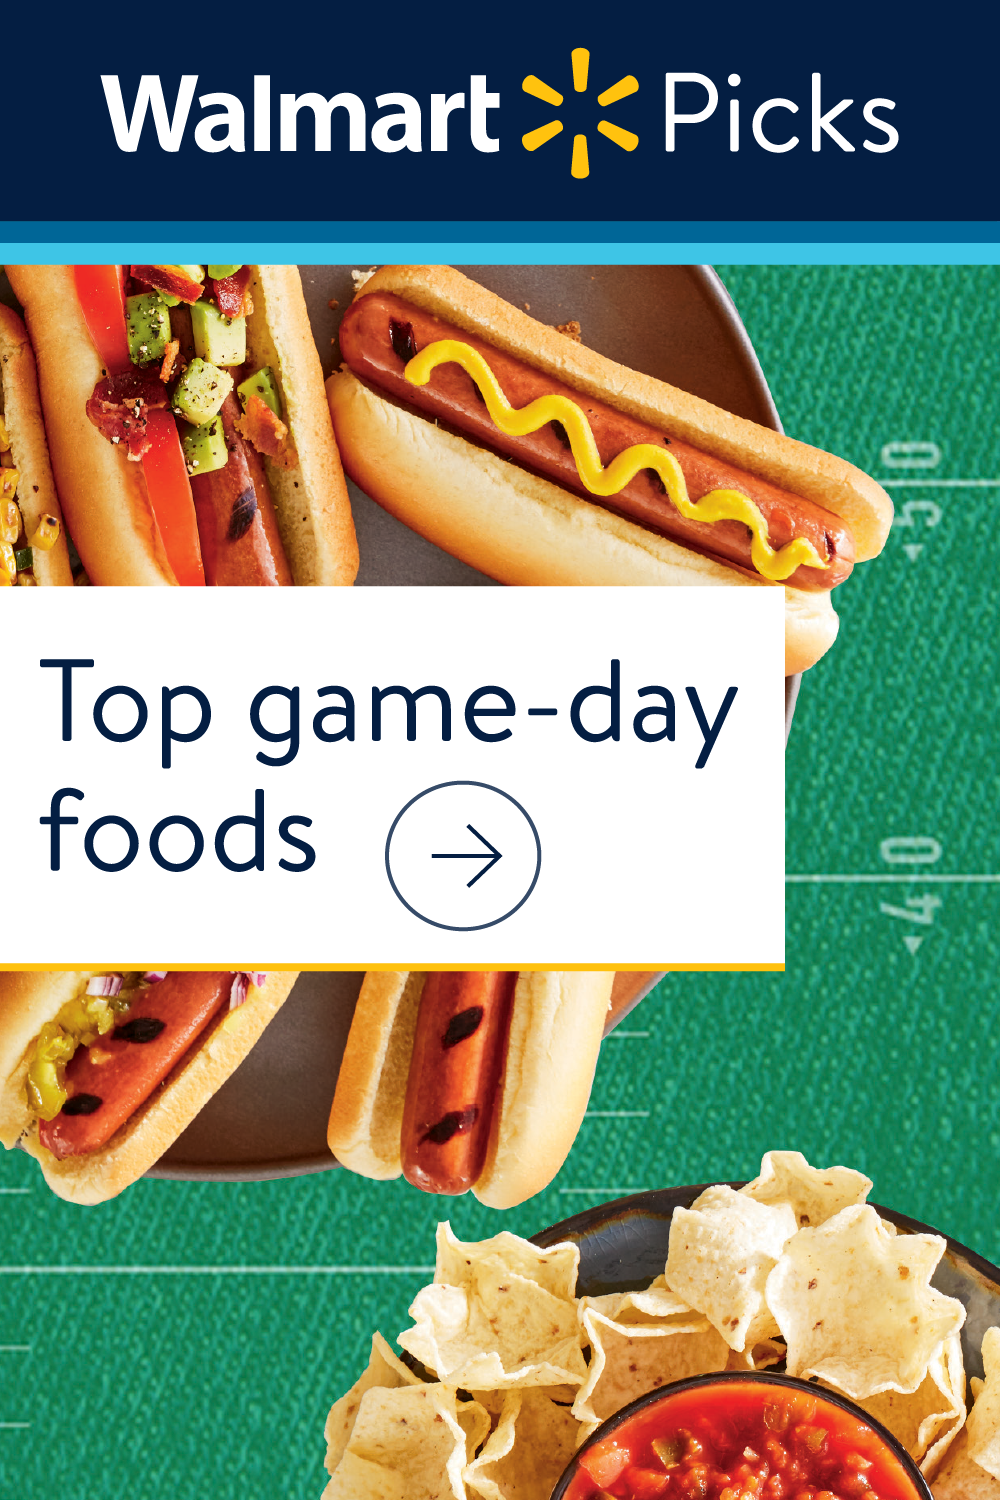 Top game-day foods Check out these picks for your game-day grilling. Save $10 on your first order with Grocery Pickup & Delivery. $50 min. Offer expires 09/30/19. Use code: SAVETIME.